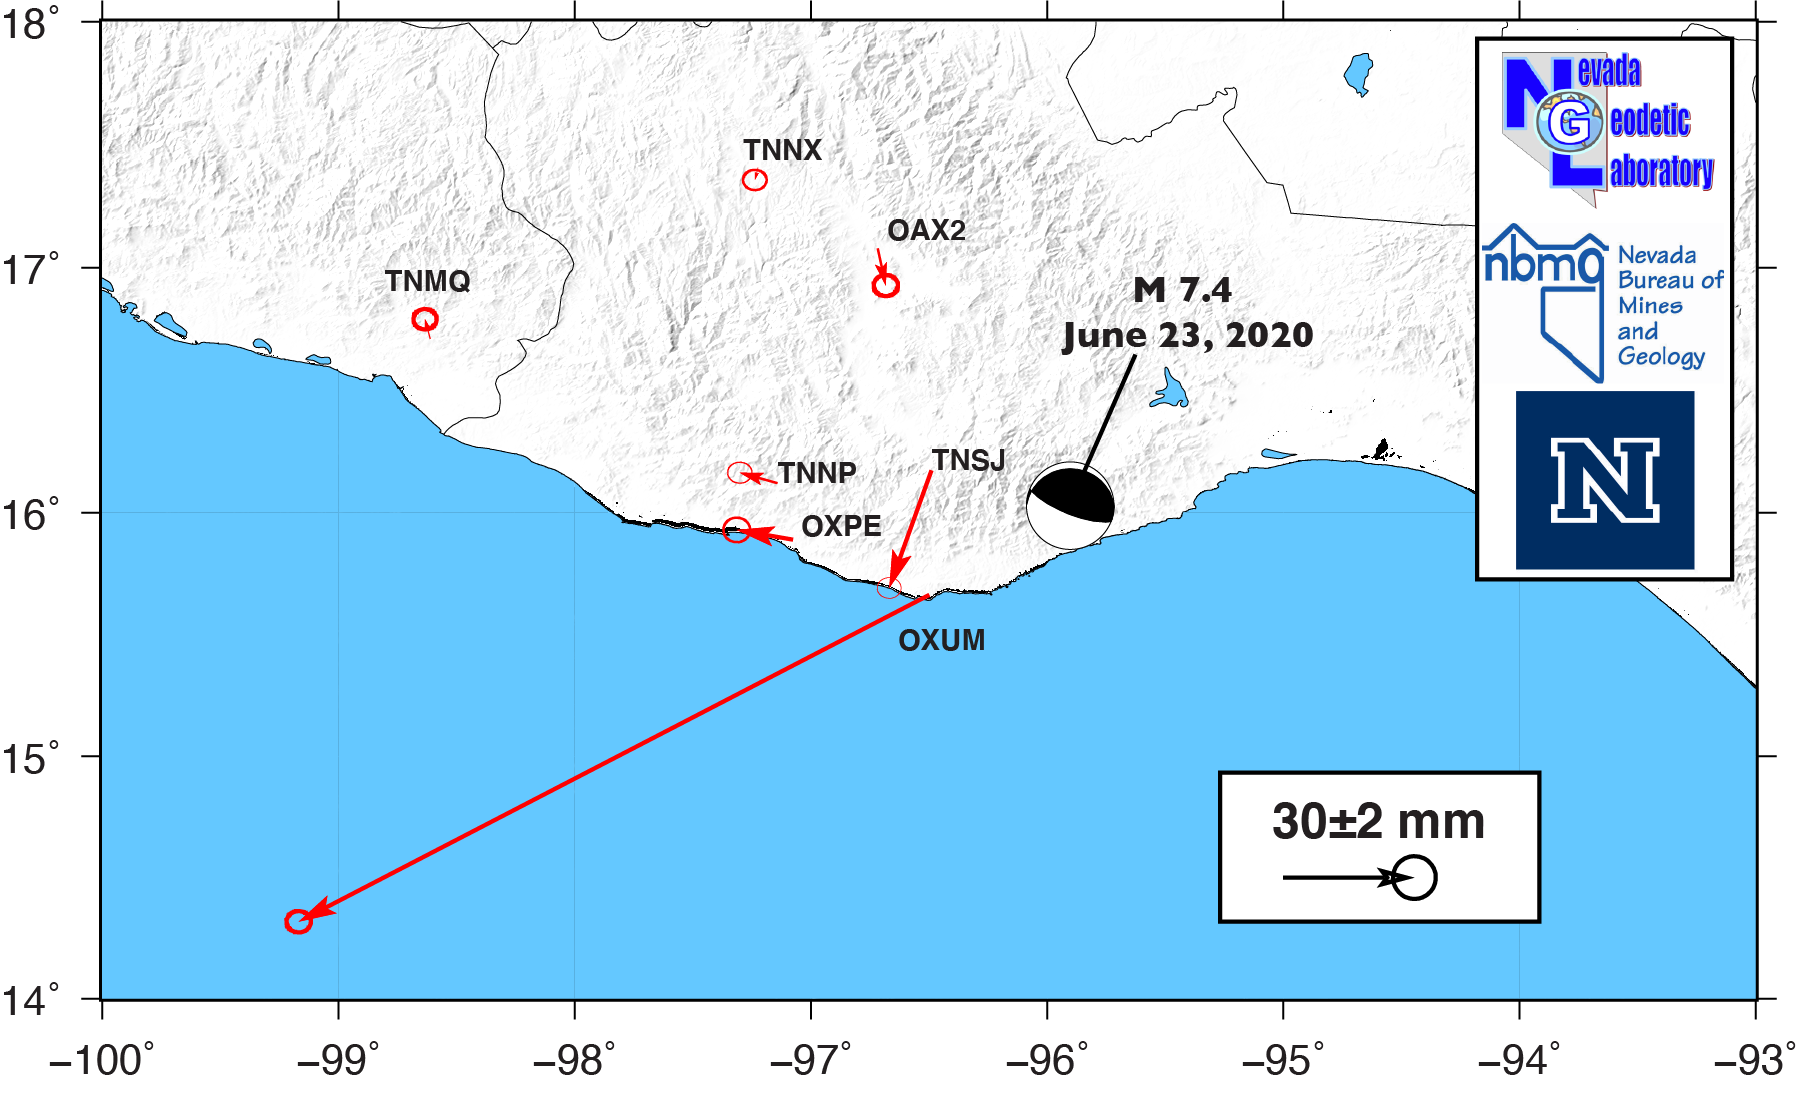 Map of Earthquakes and GPS displacements